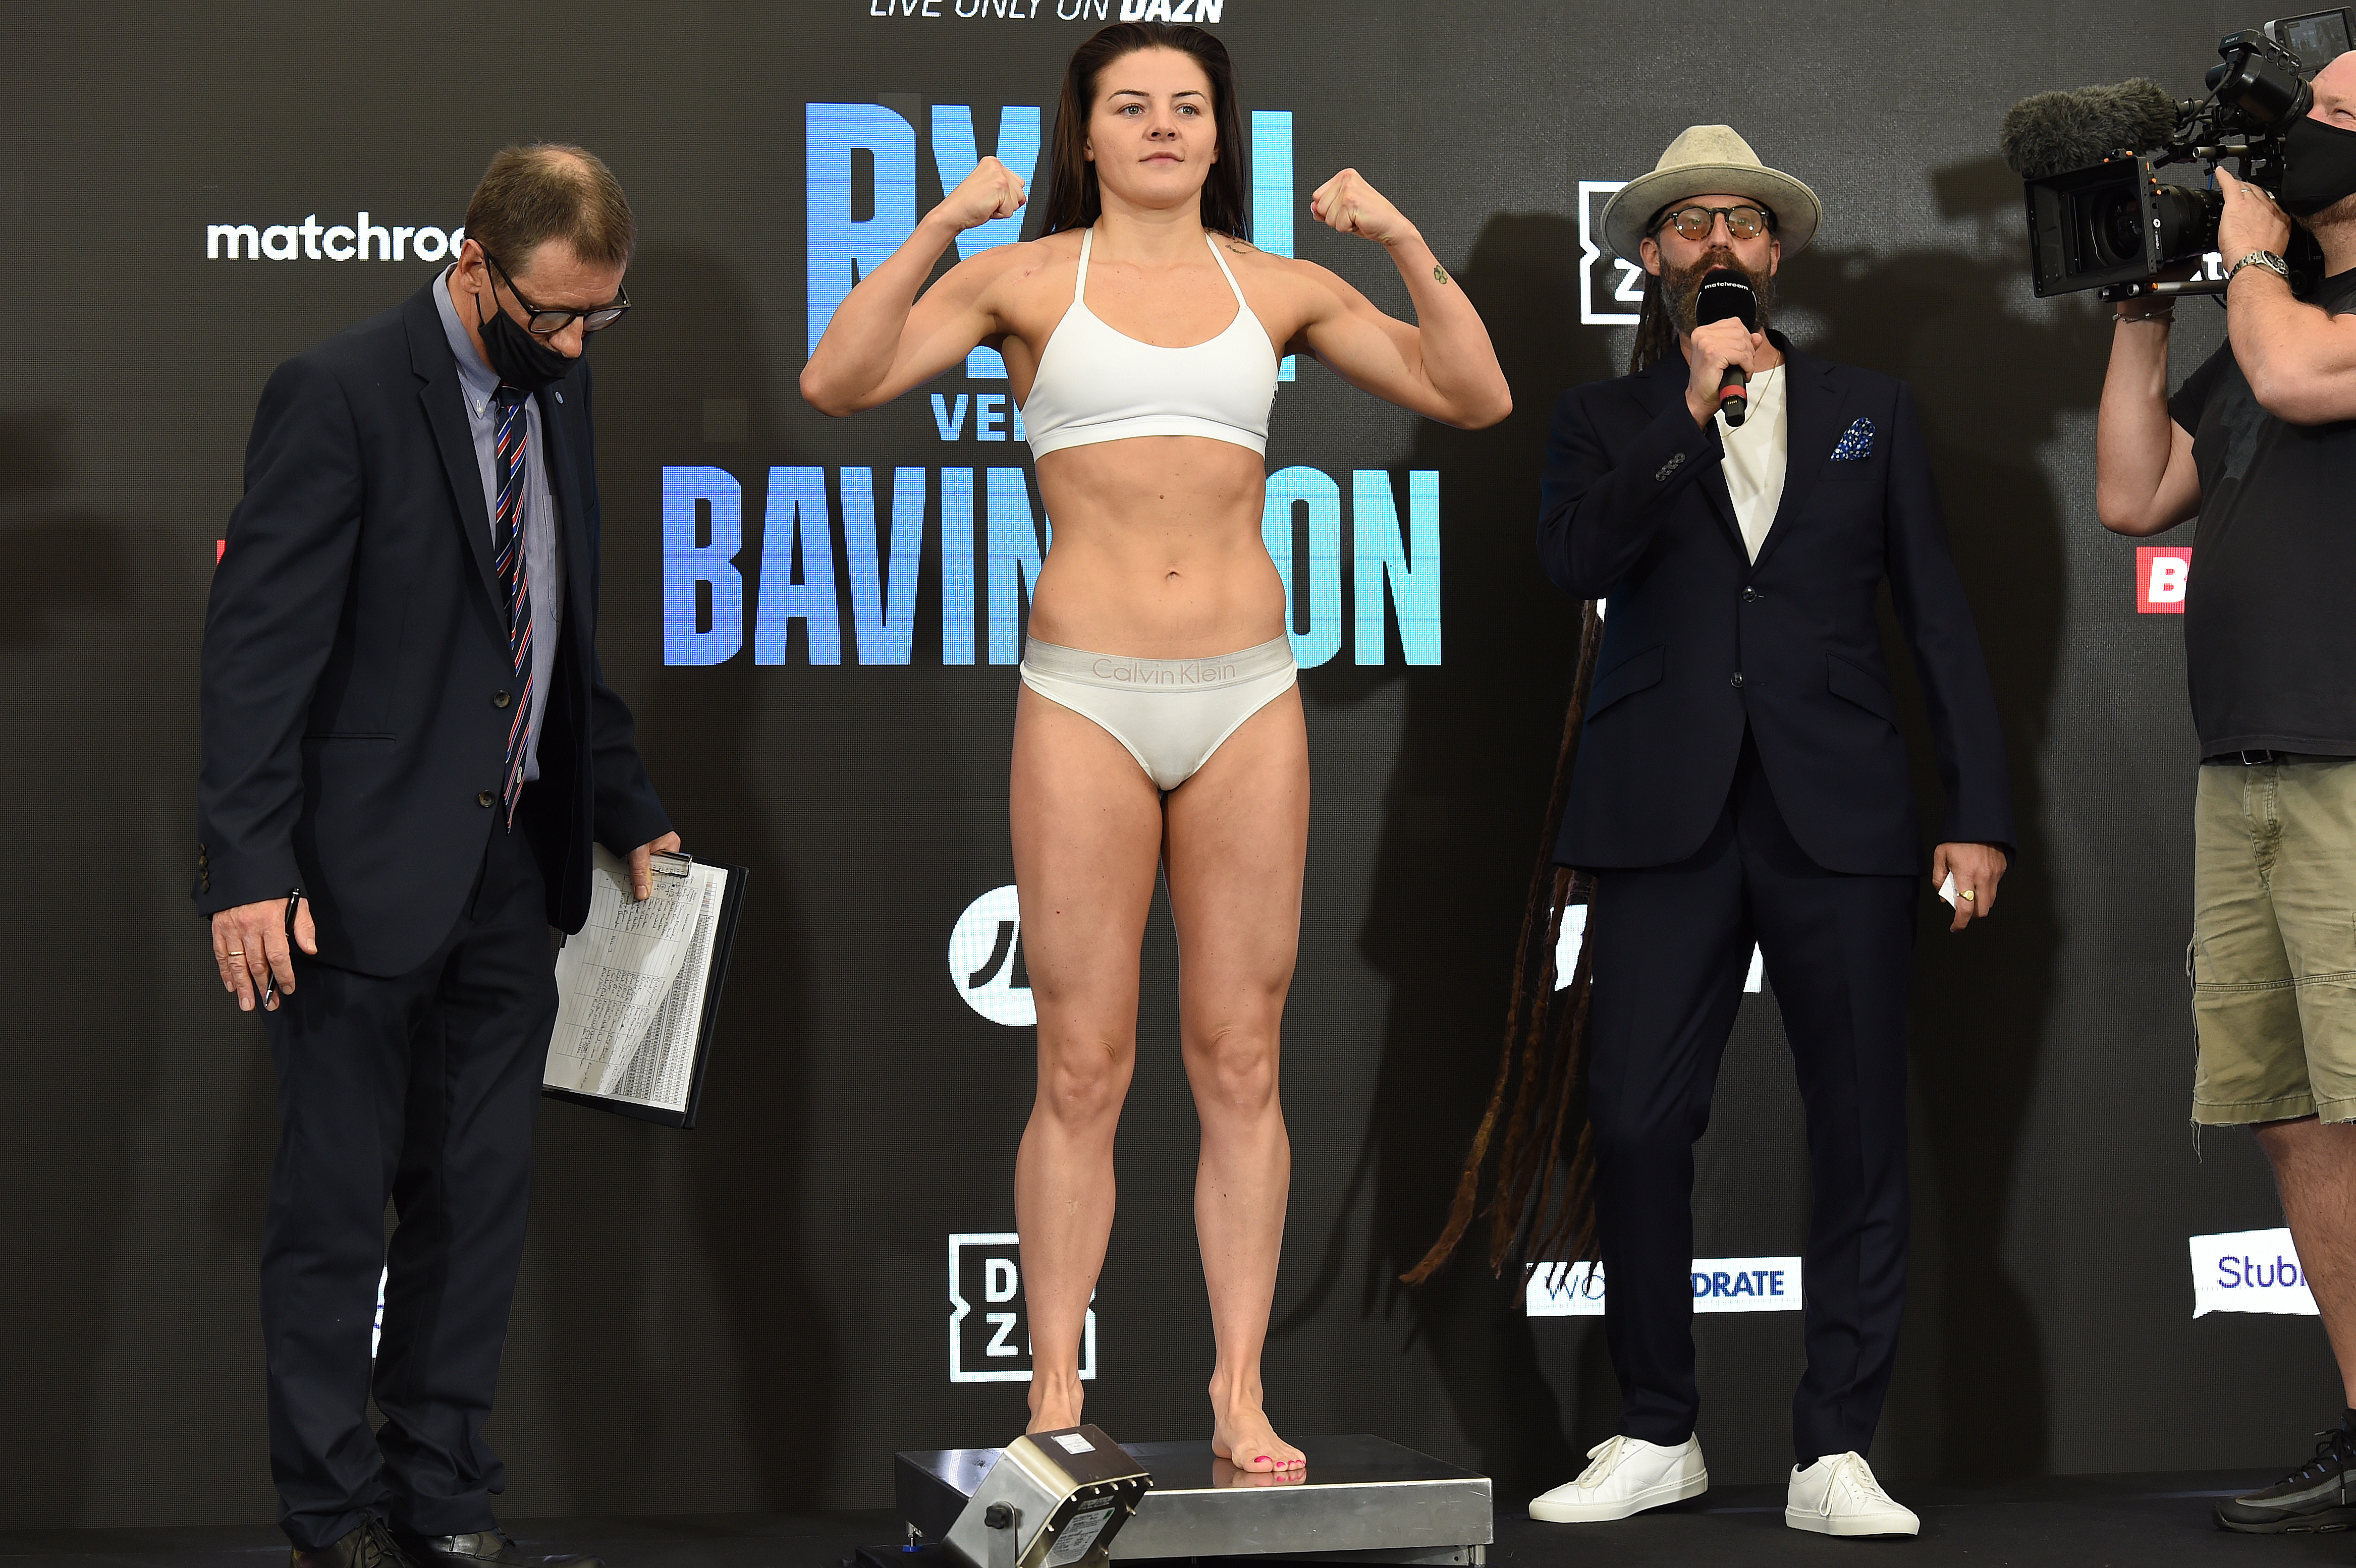 <p>BRENTWOOD, ENGLAND - JULY 30: Sandy Ryan at the Matchroom Fight Camp weigh in on July 30, 2021 in Brentwood, England. (Photo by Leigh Dawney/Getty Images)</p>